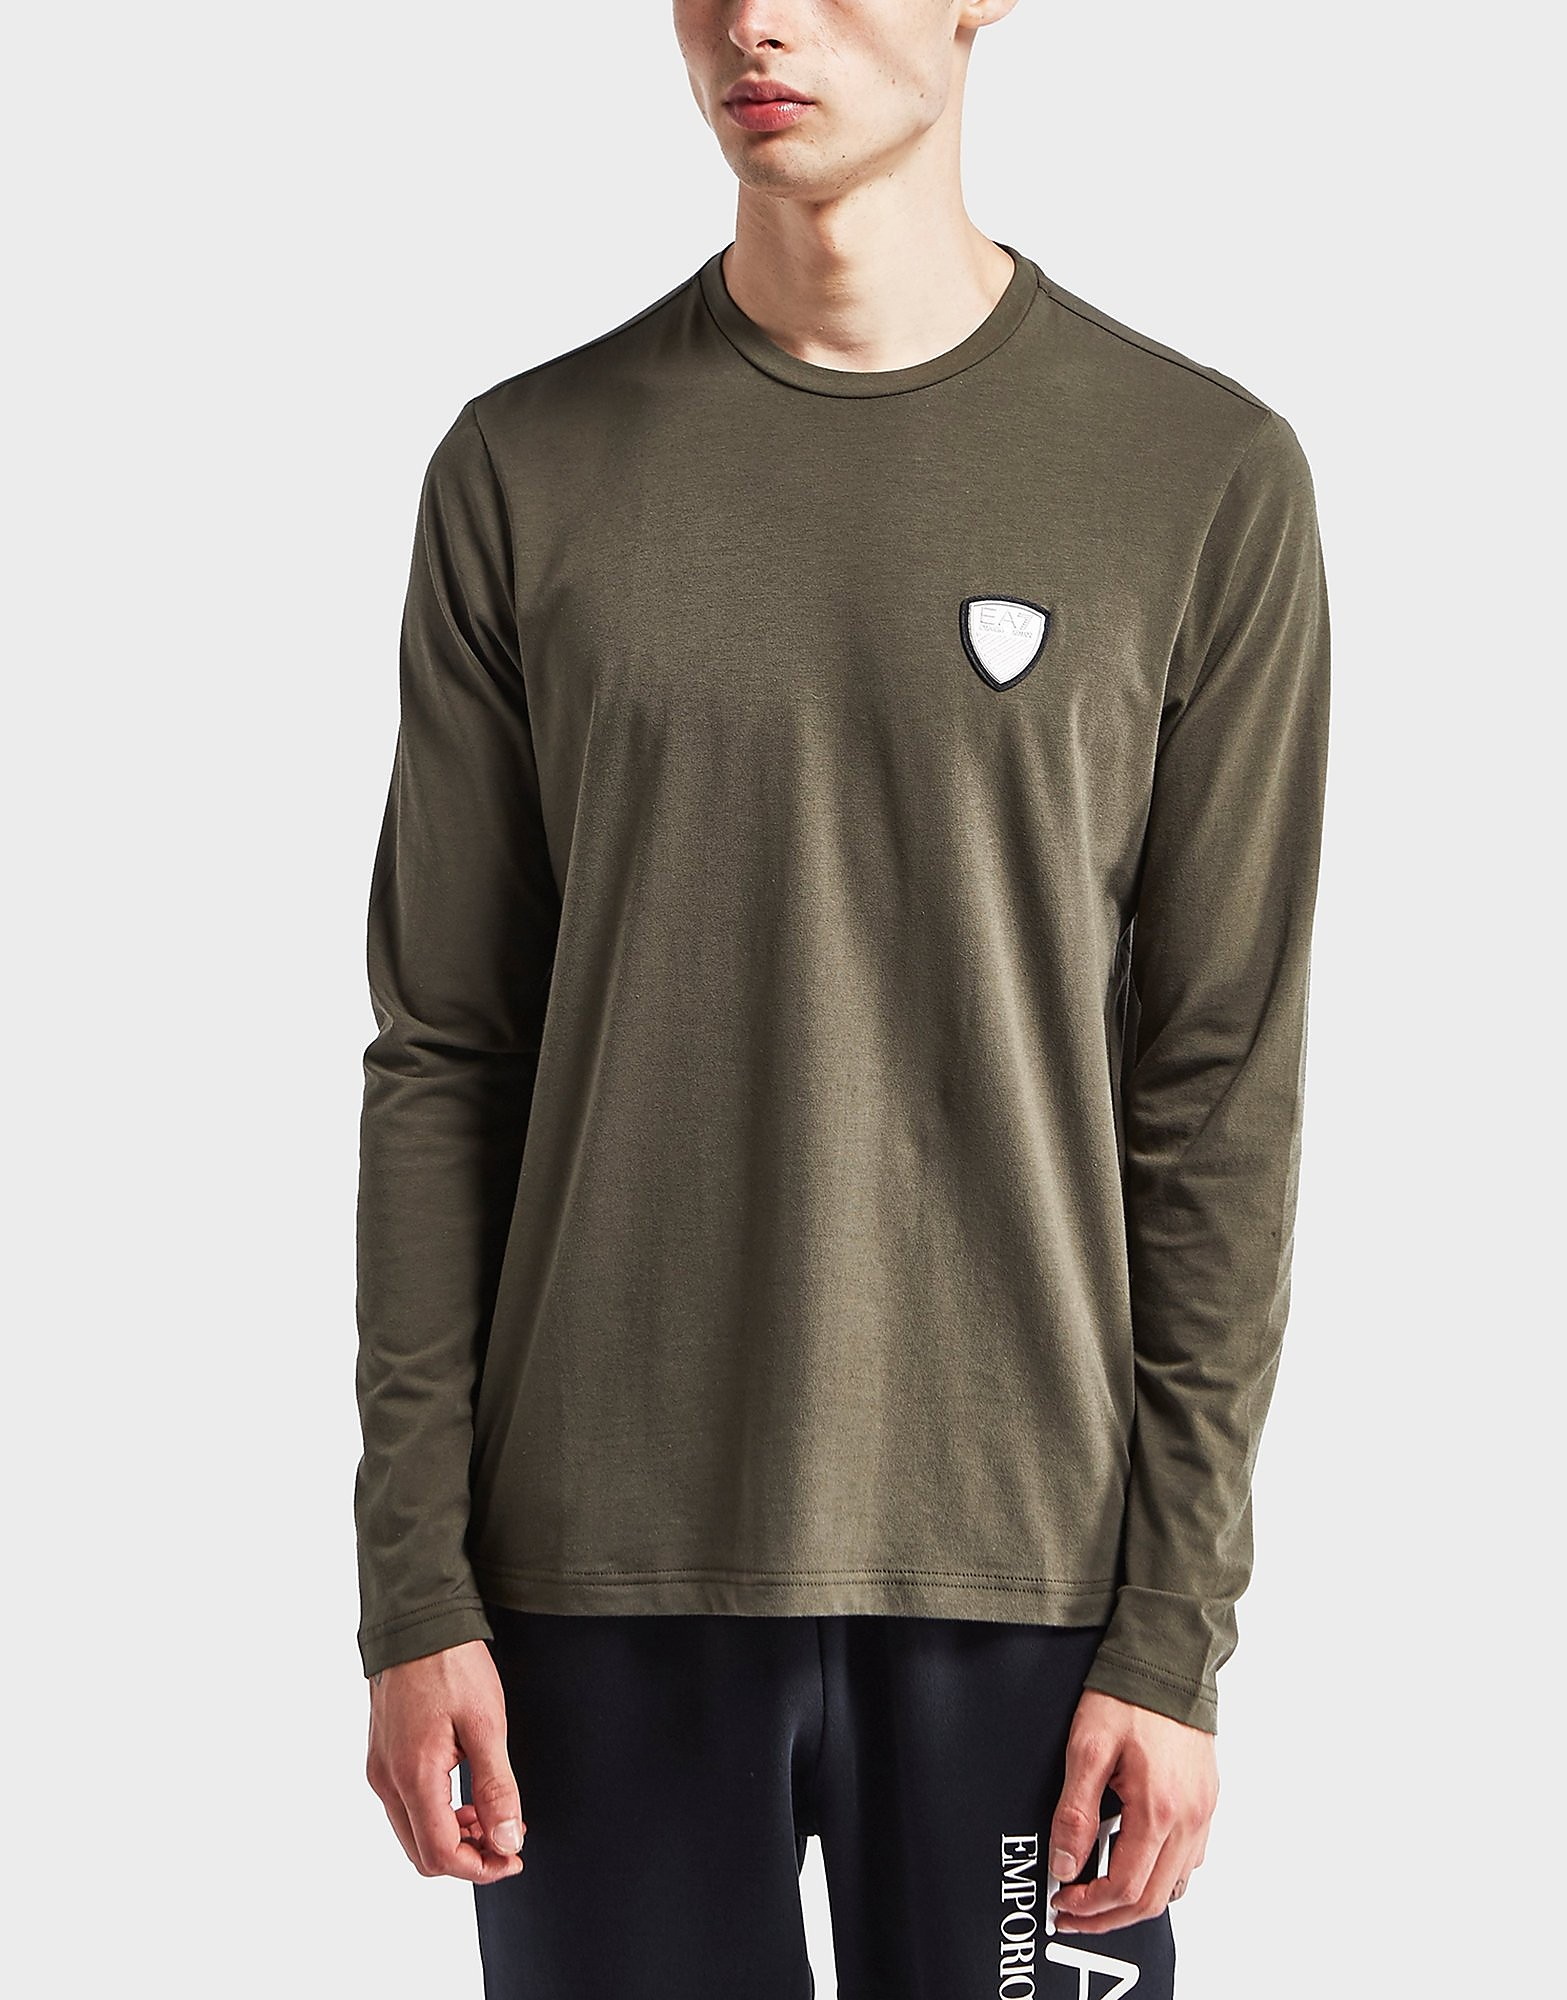 Emporio Armani EA7 Shield Logo Long Sleeve T-Shirt - Exclusive